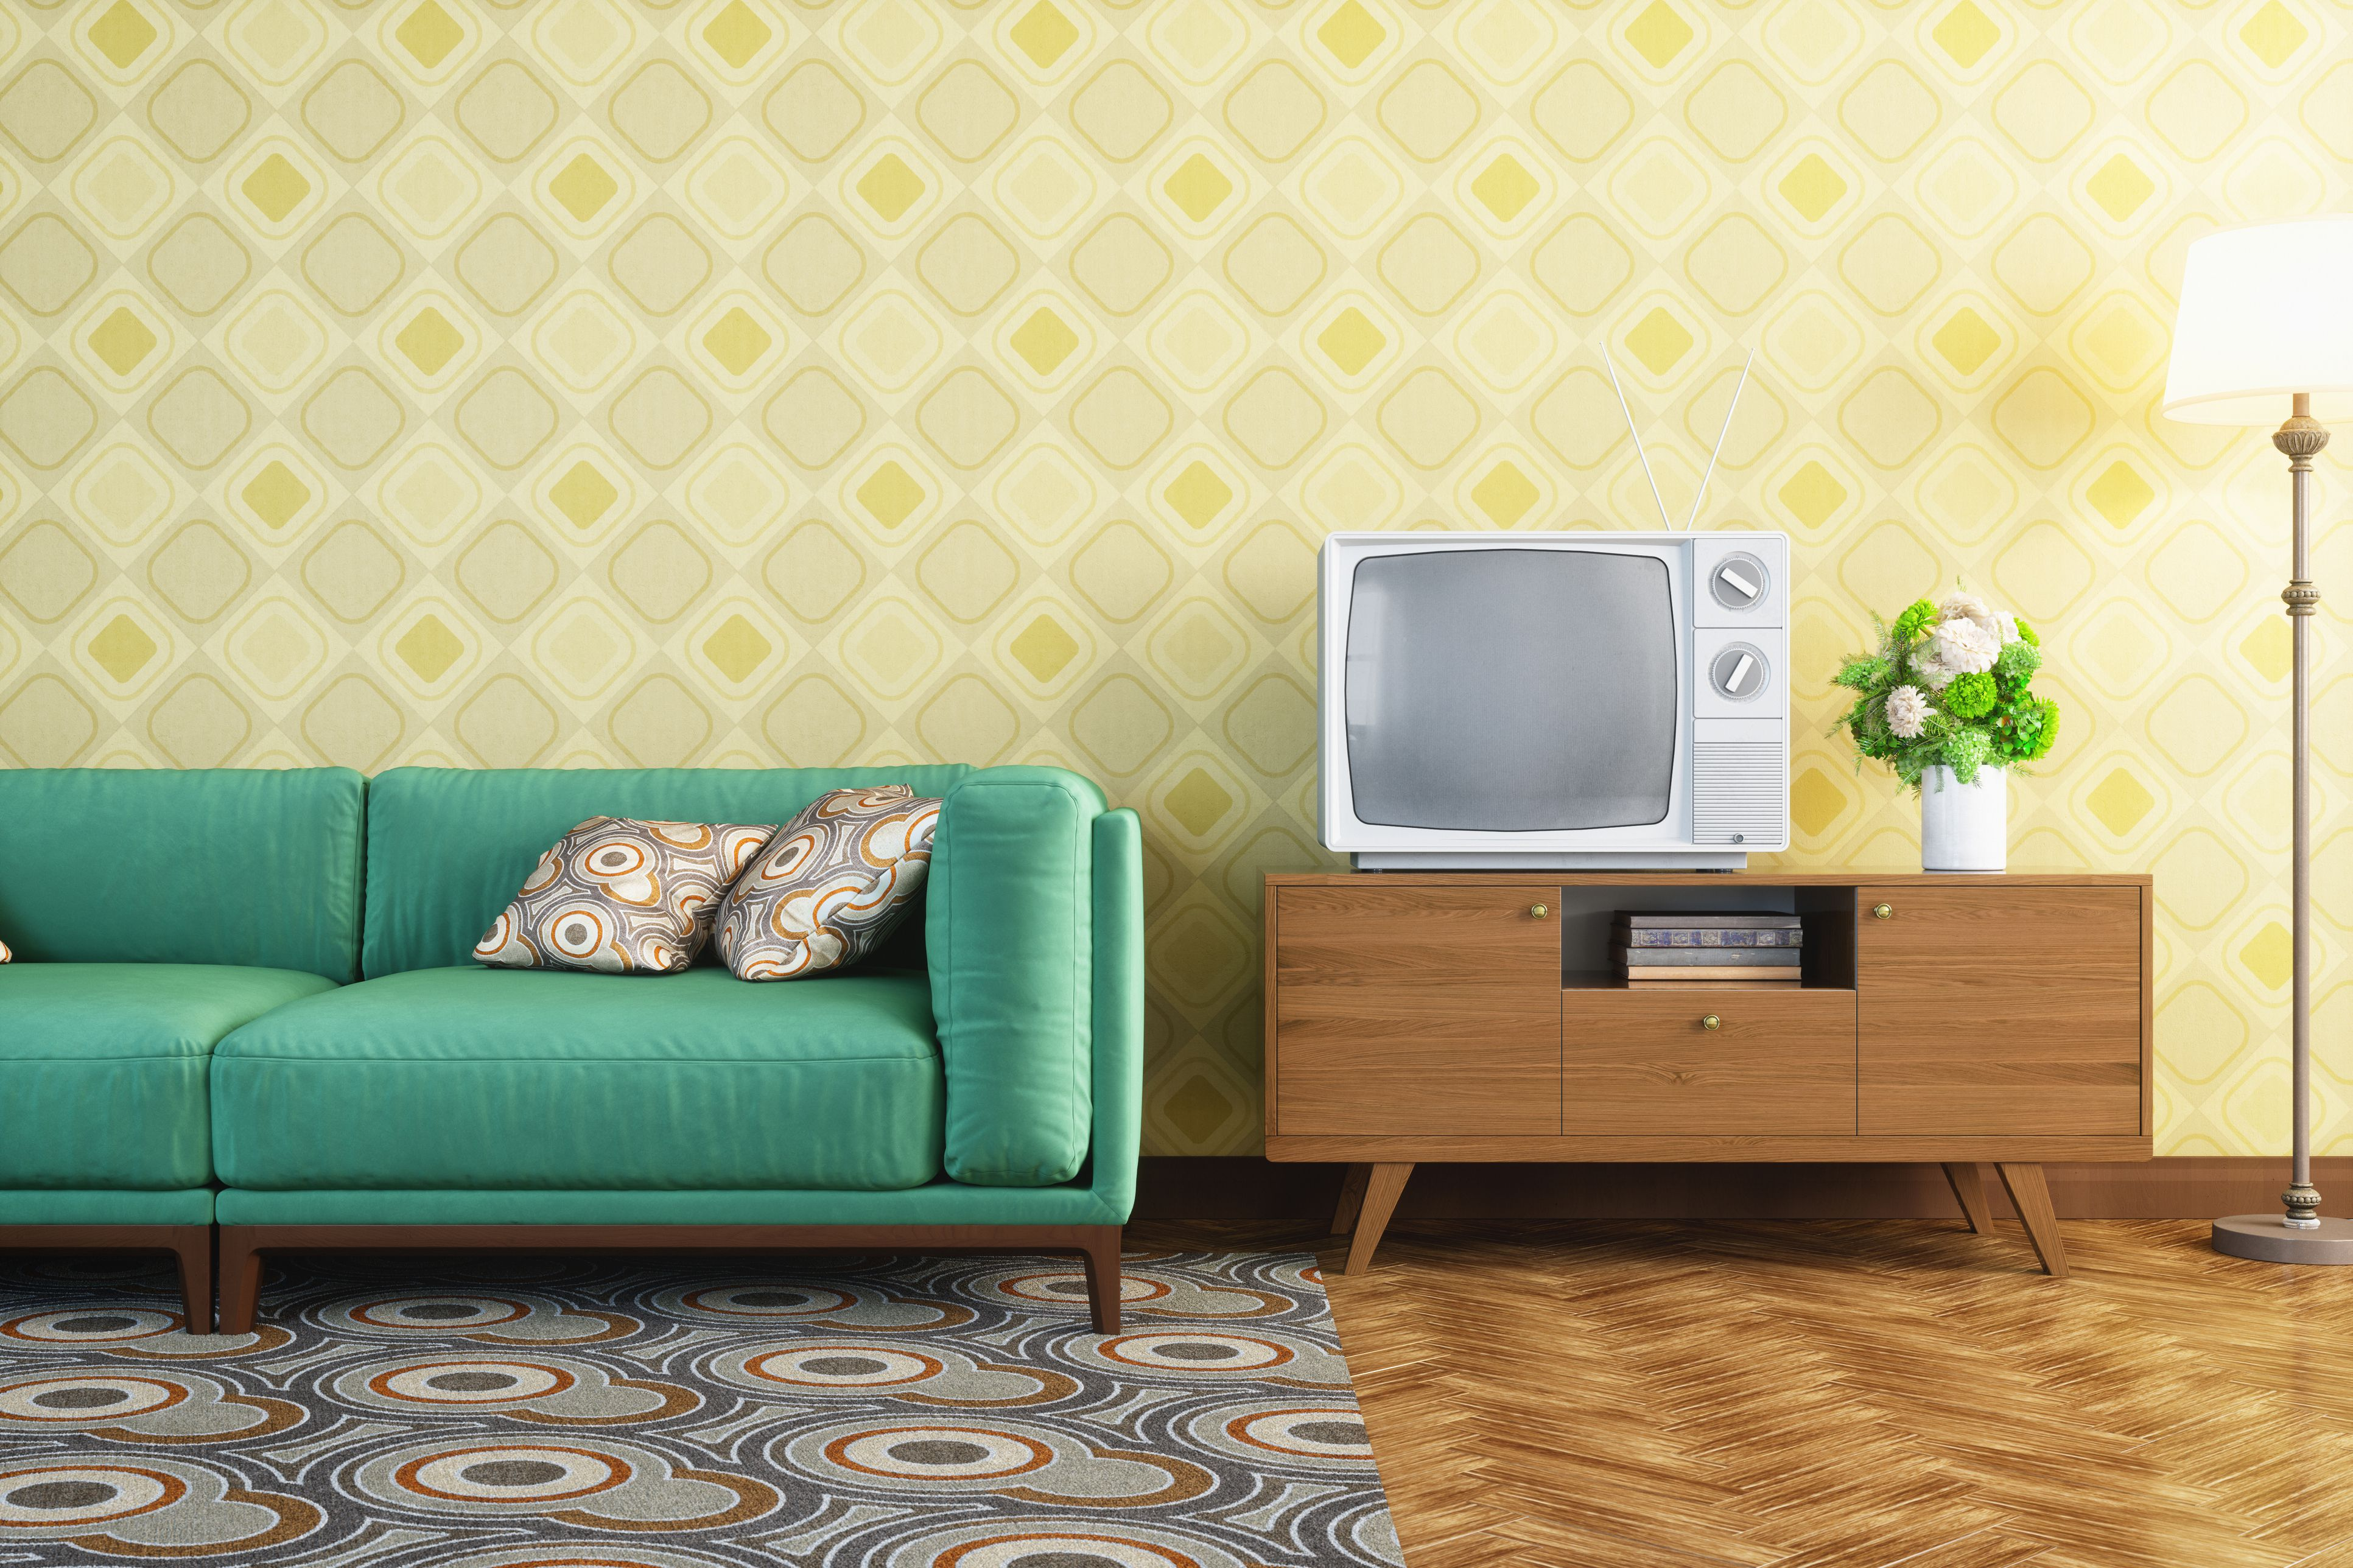 60s Style Couches 7 Tips For Amazing Retro Style Decorating